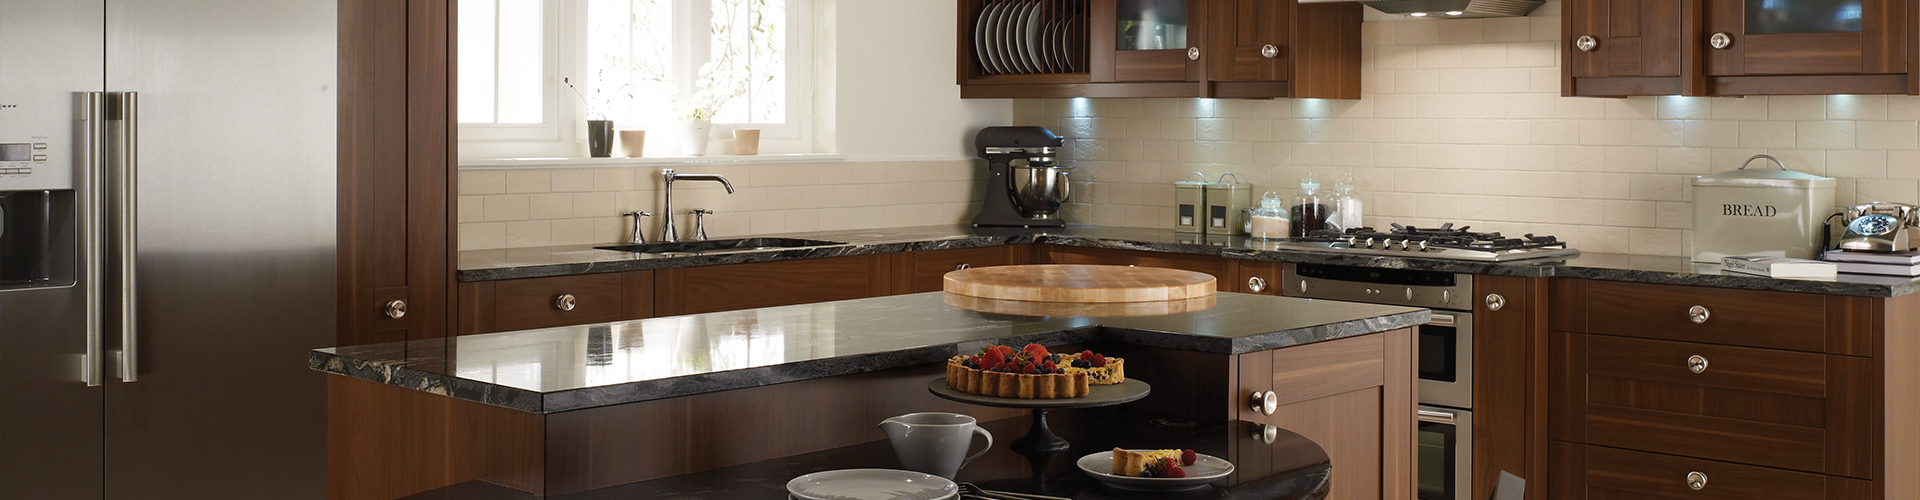 Woodbank Kitchens Northern Ireland Based Kitchen Design Company About Us Woodbank Kitchens